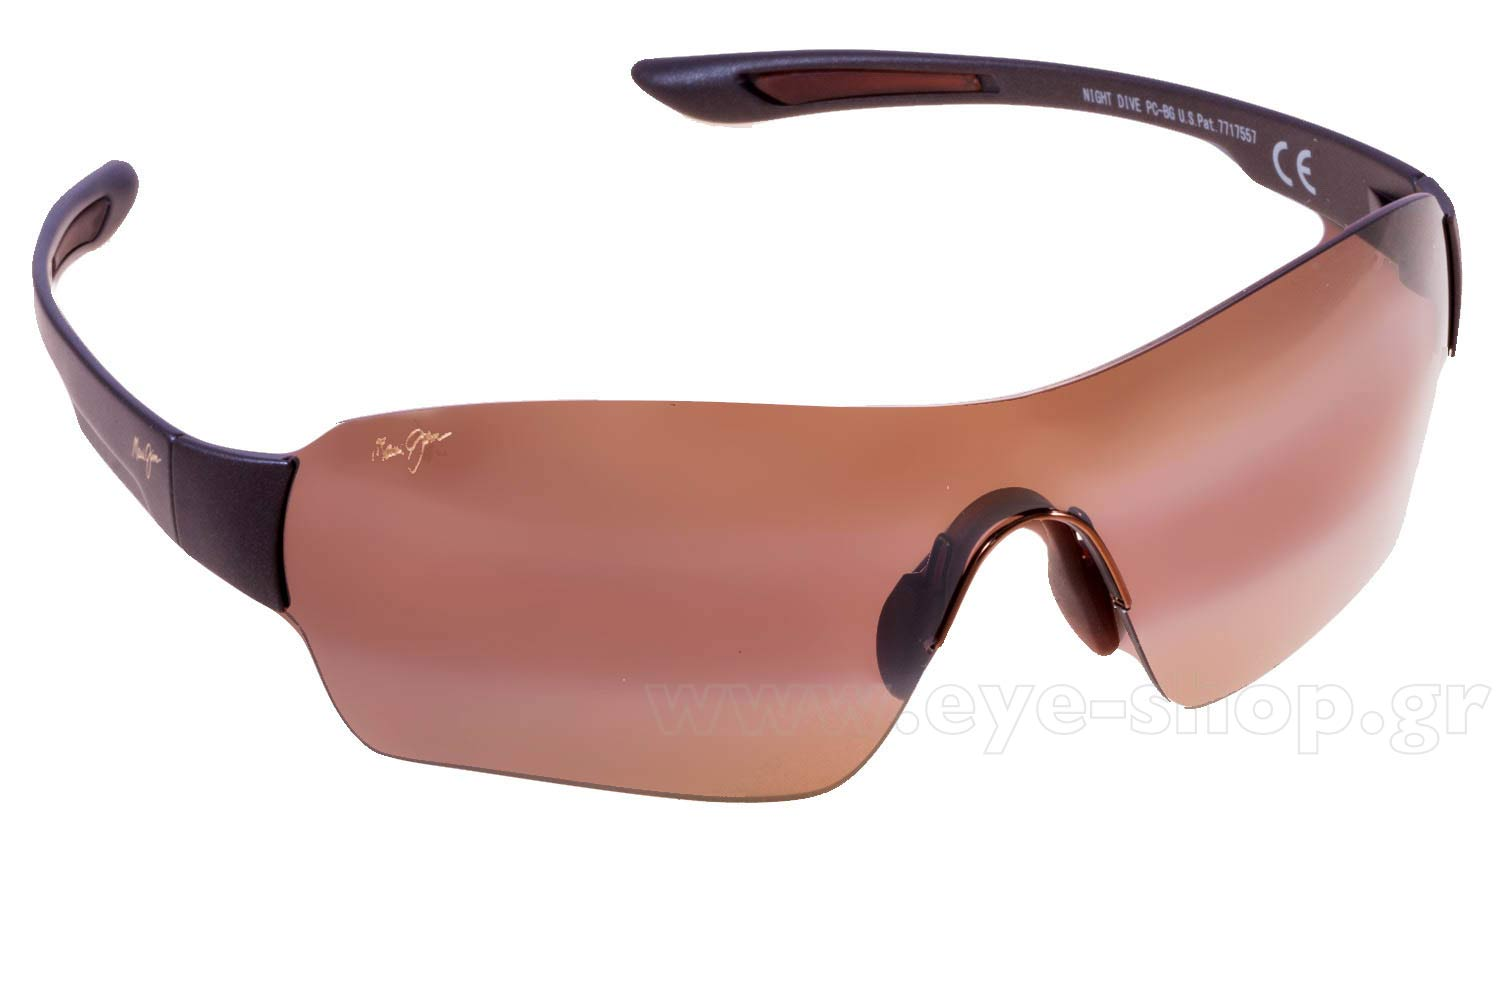 ad9008446d9 SUNGLASSES Maui Jim NIGHT DIVE 521-25M Bronze double gradient mirror  Polarized Plus2